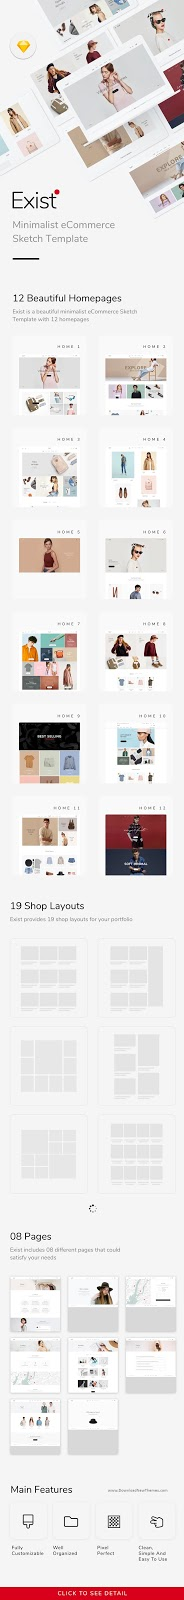 Minimalist eCommerce Sketch Template